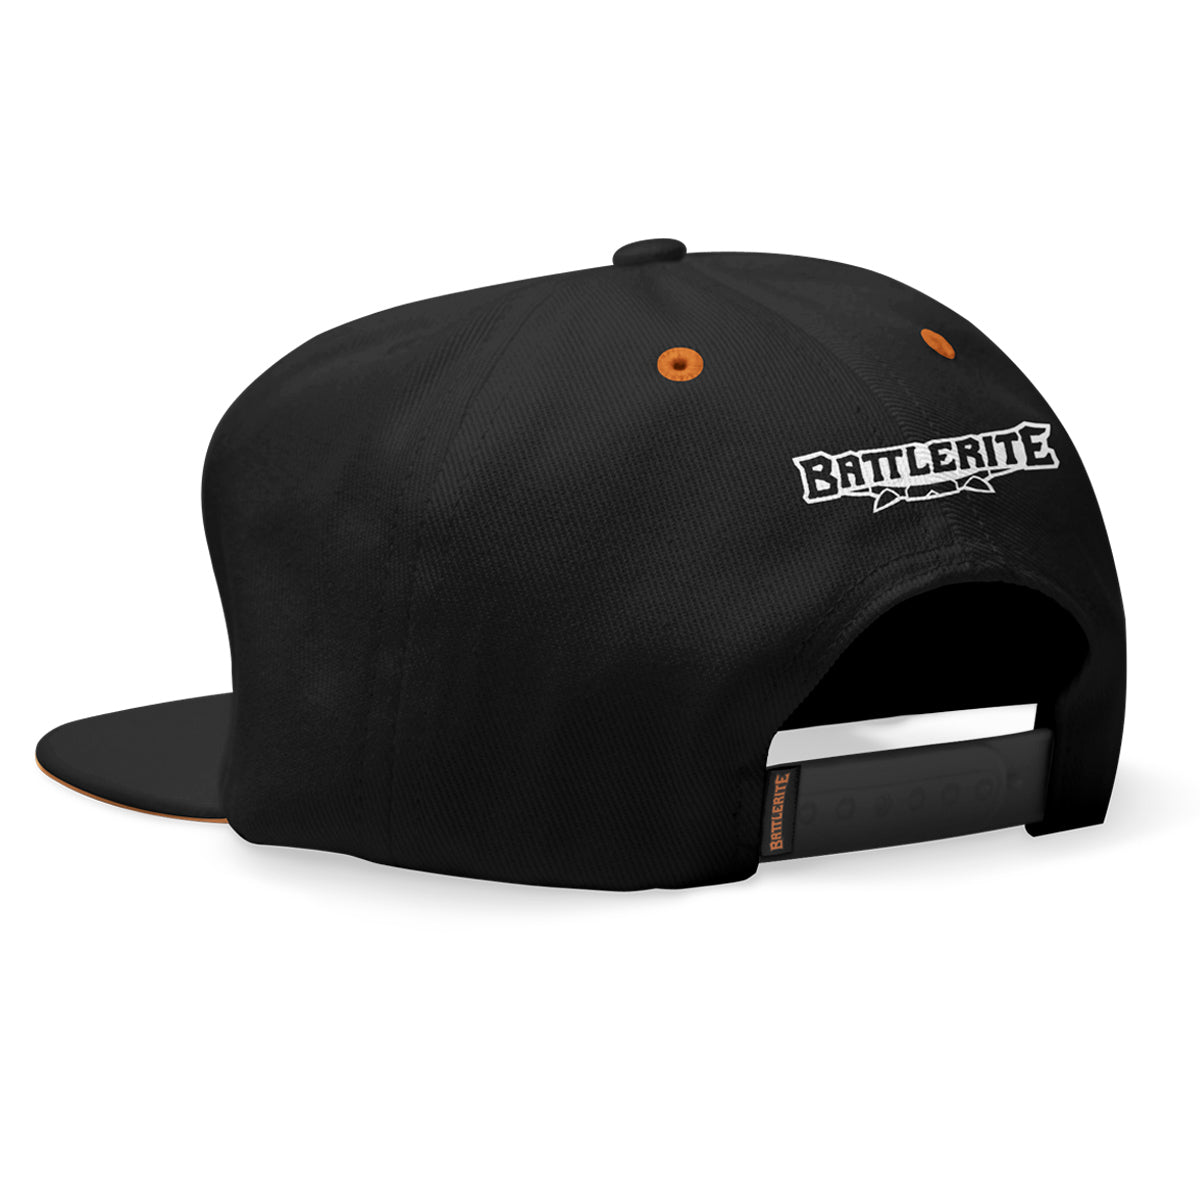 Battlerite black & orange snapback